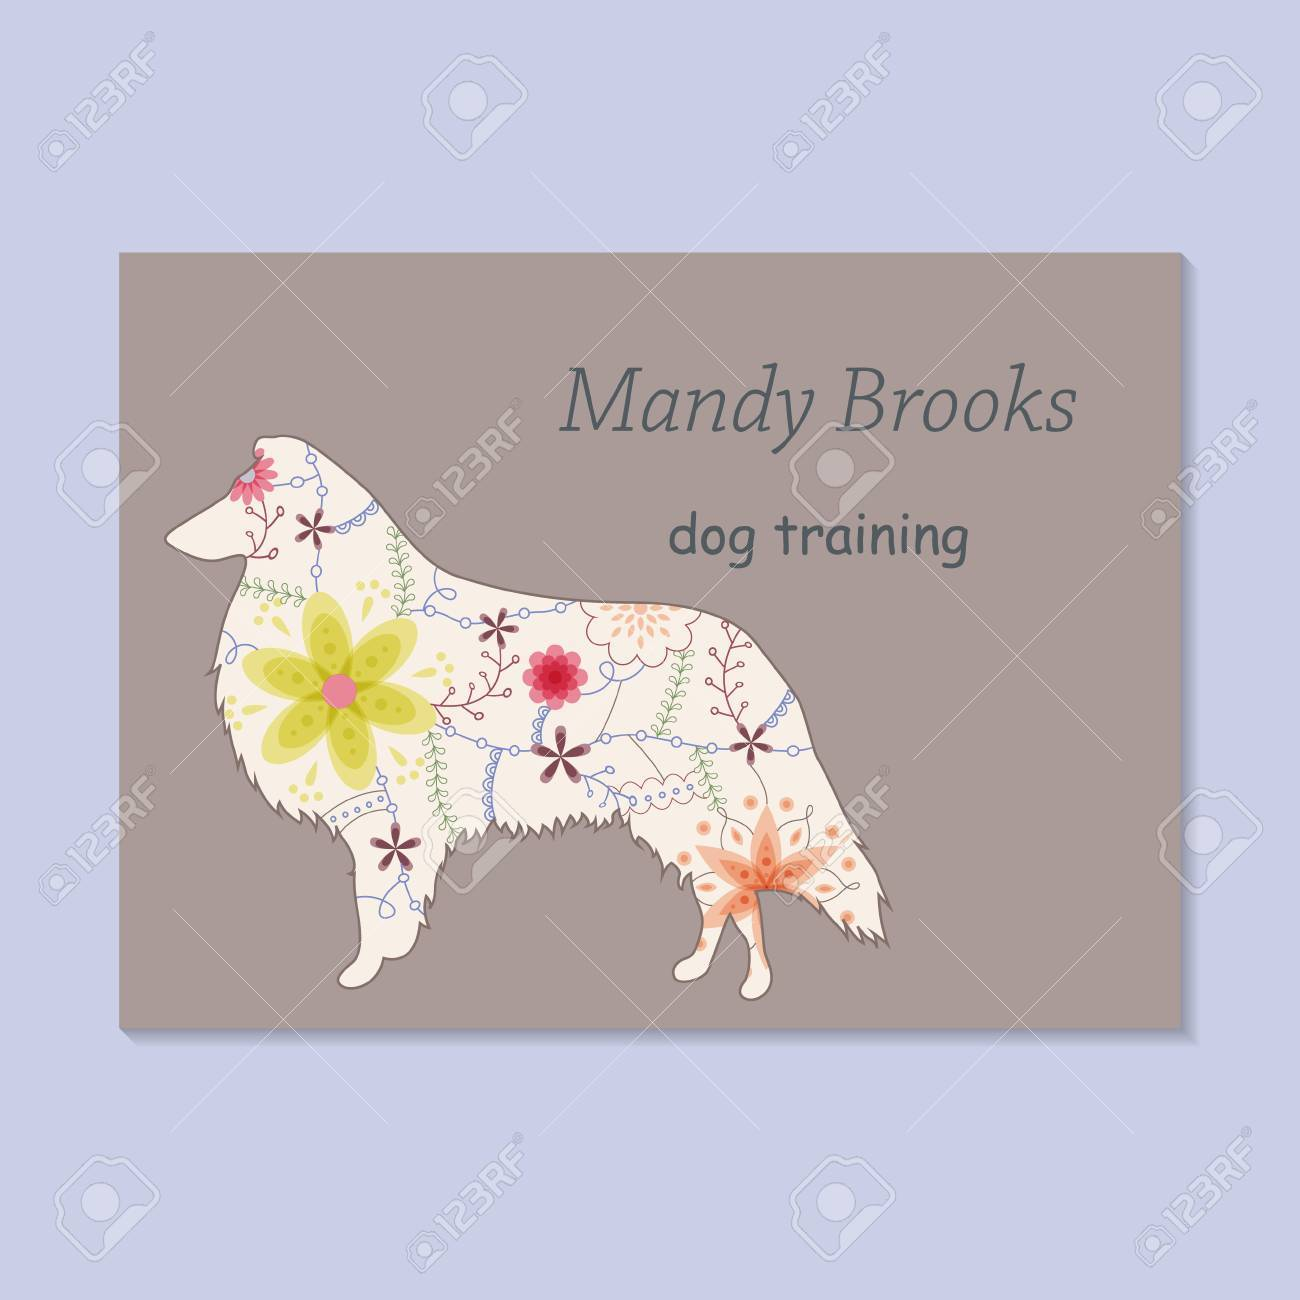 Vector Vintage Business Card For Dog Training Royalty Free Cliparts ...